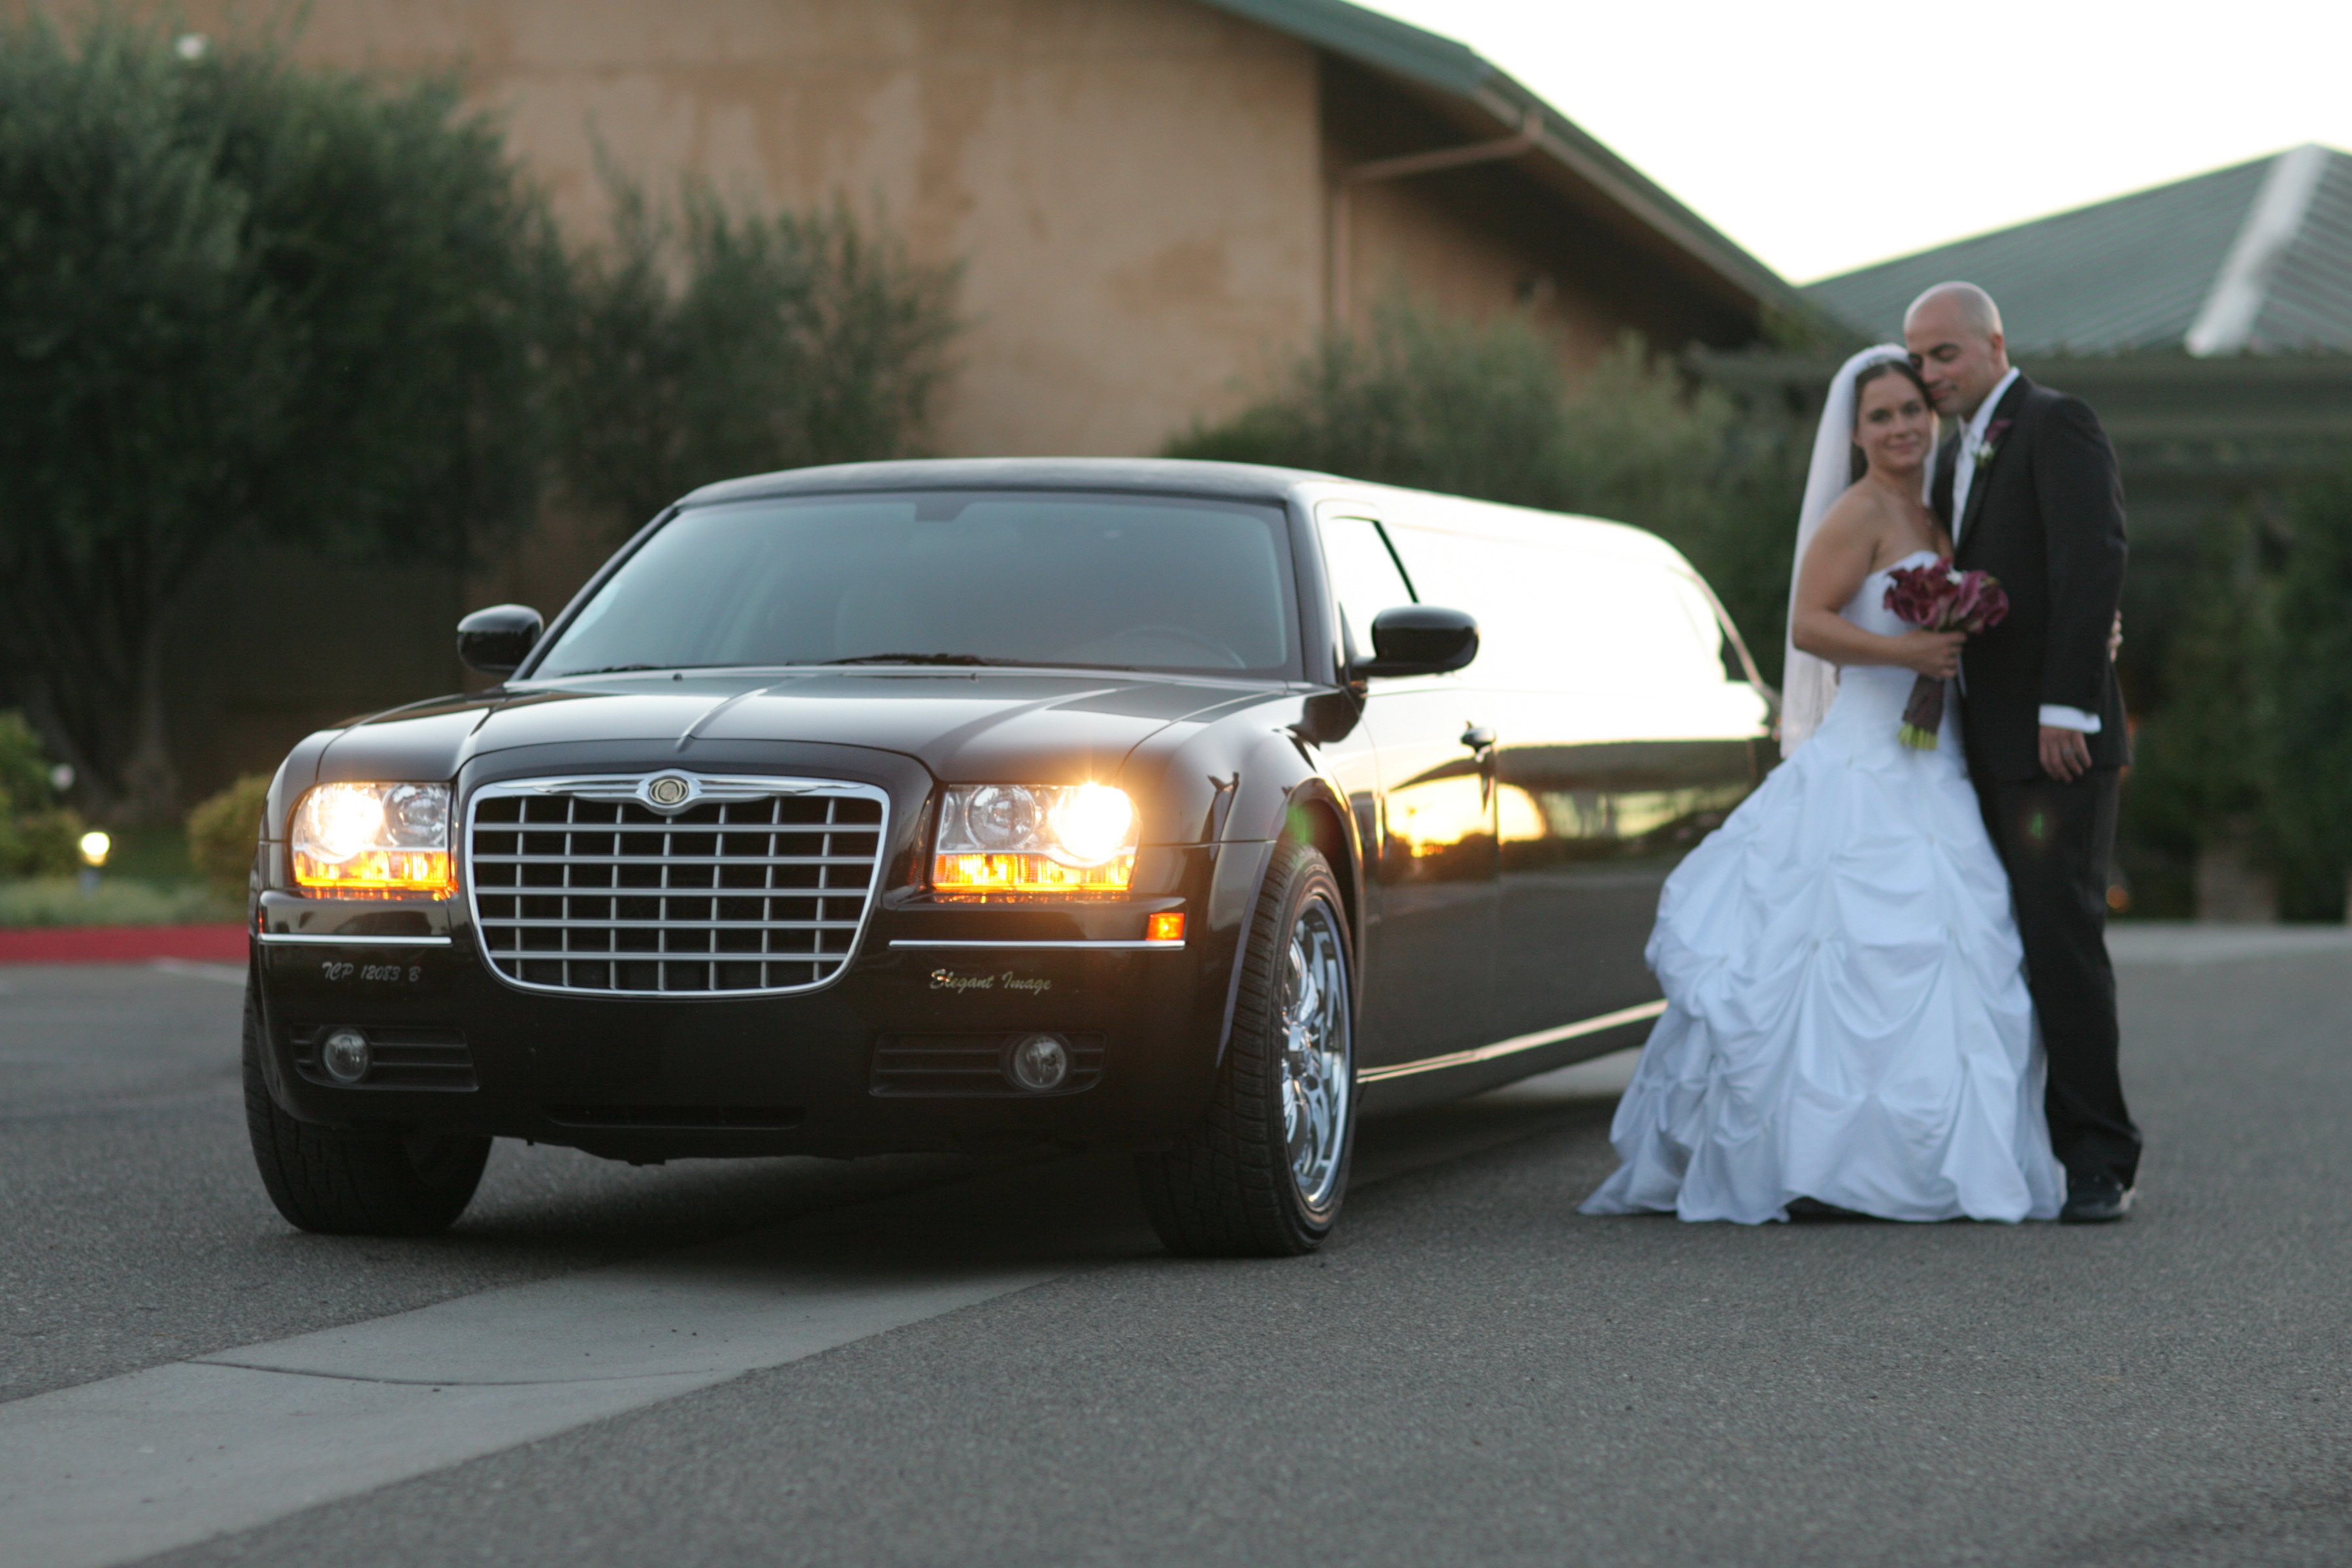 WEDDING Limo reservation